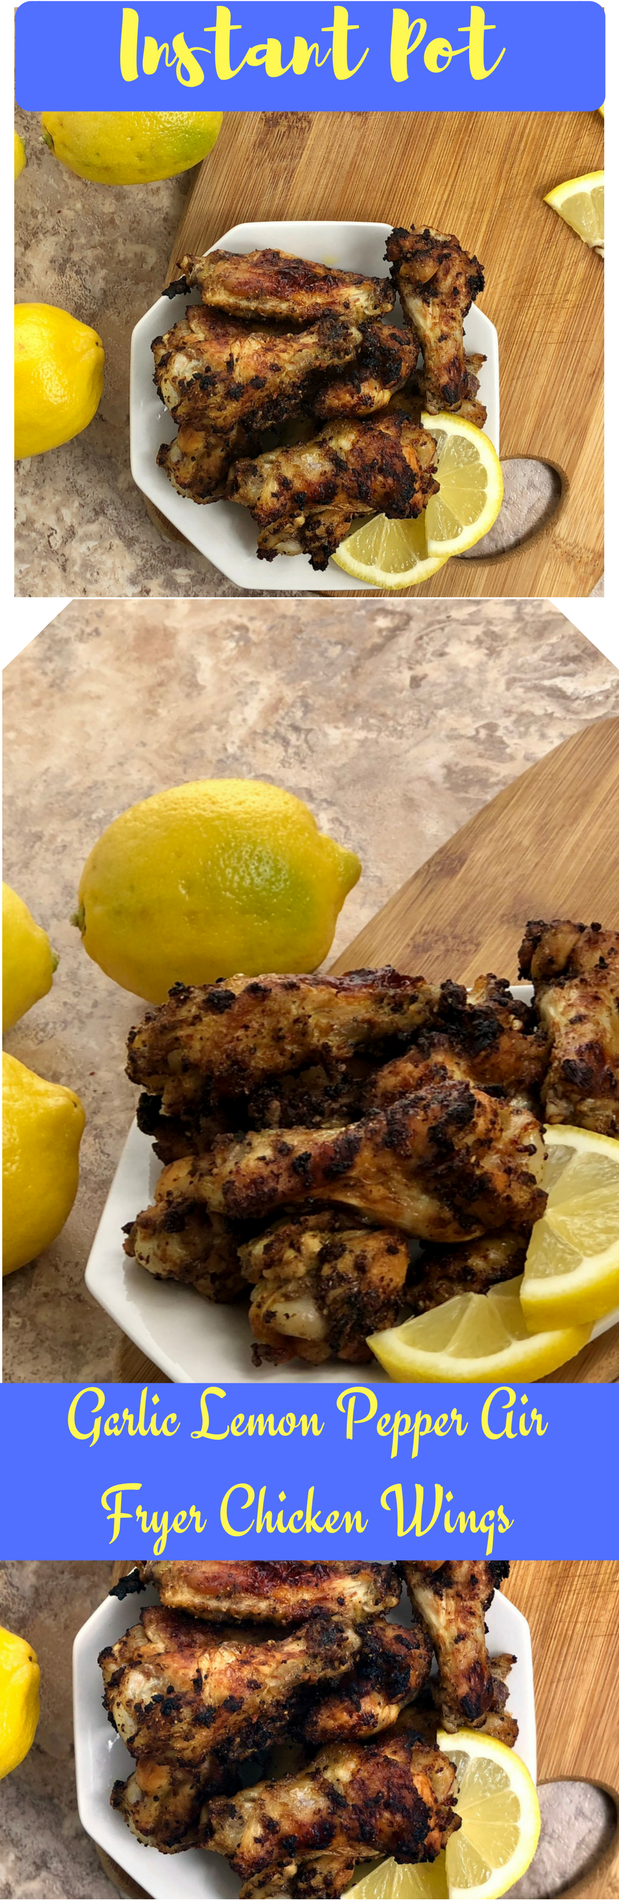 Garlic Lemon Pepper Air Fryer Chicken Wings